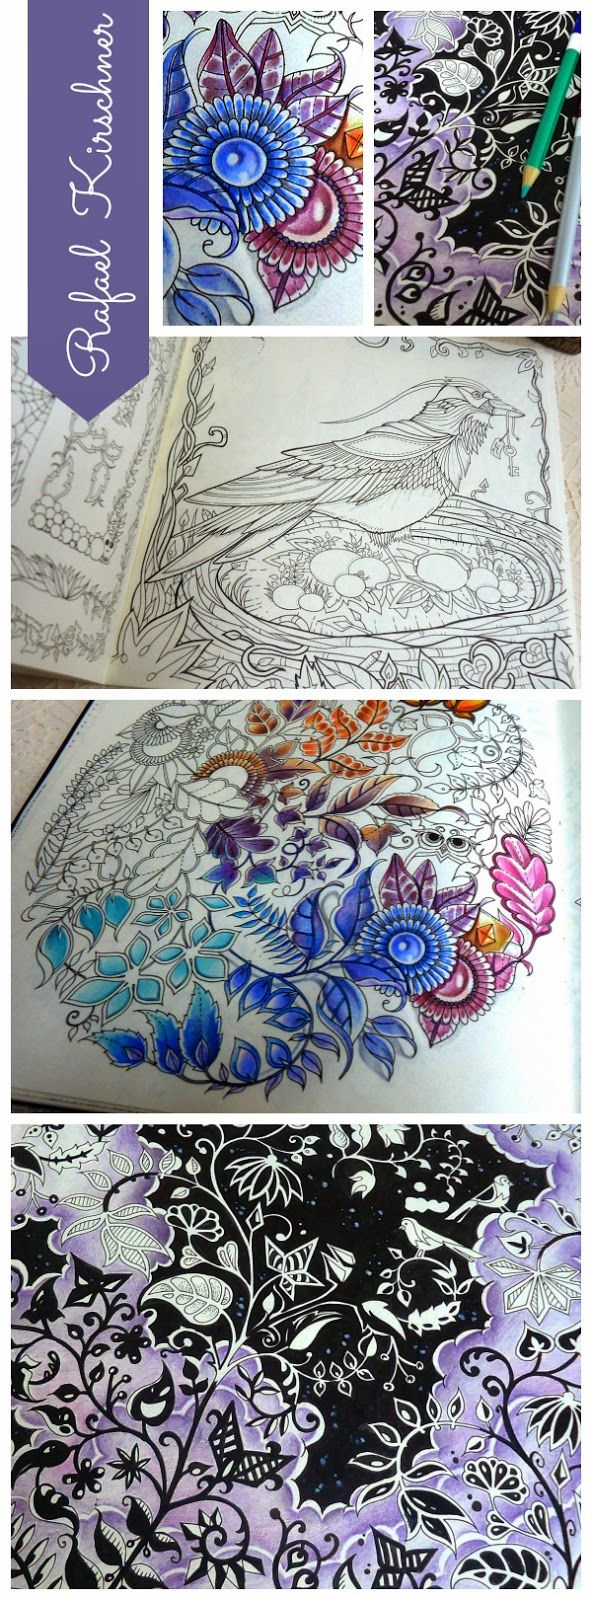 Atelier Gina Pafiadache Tips For Coloring Books Secret Garden And Enchanted Forest